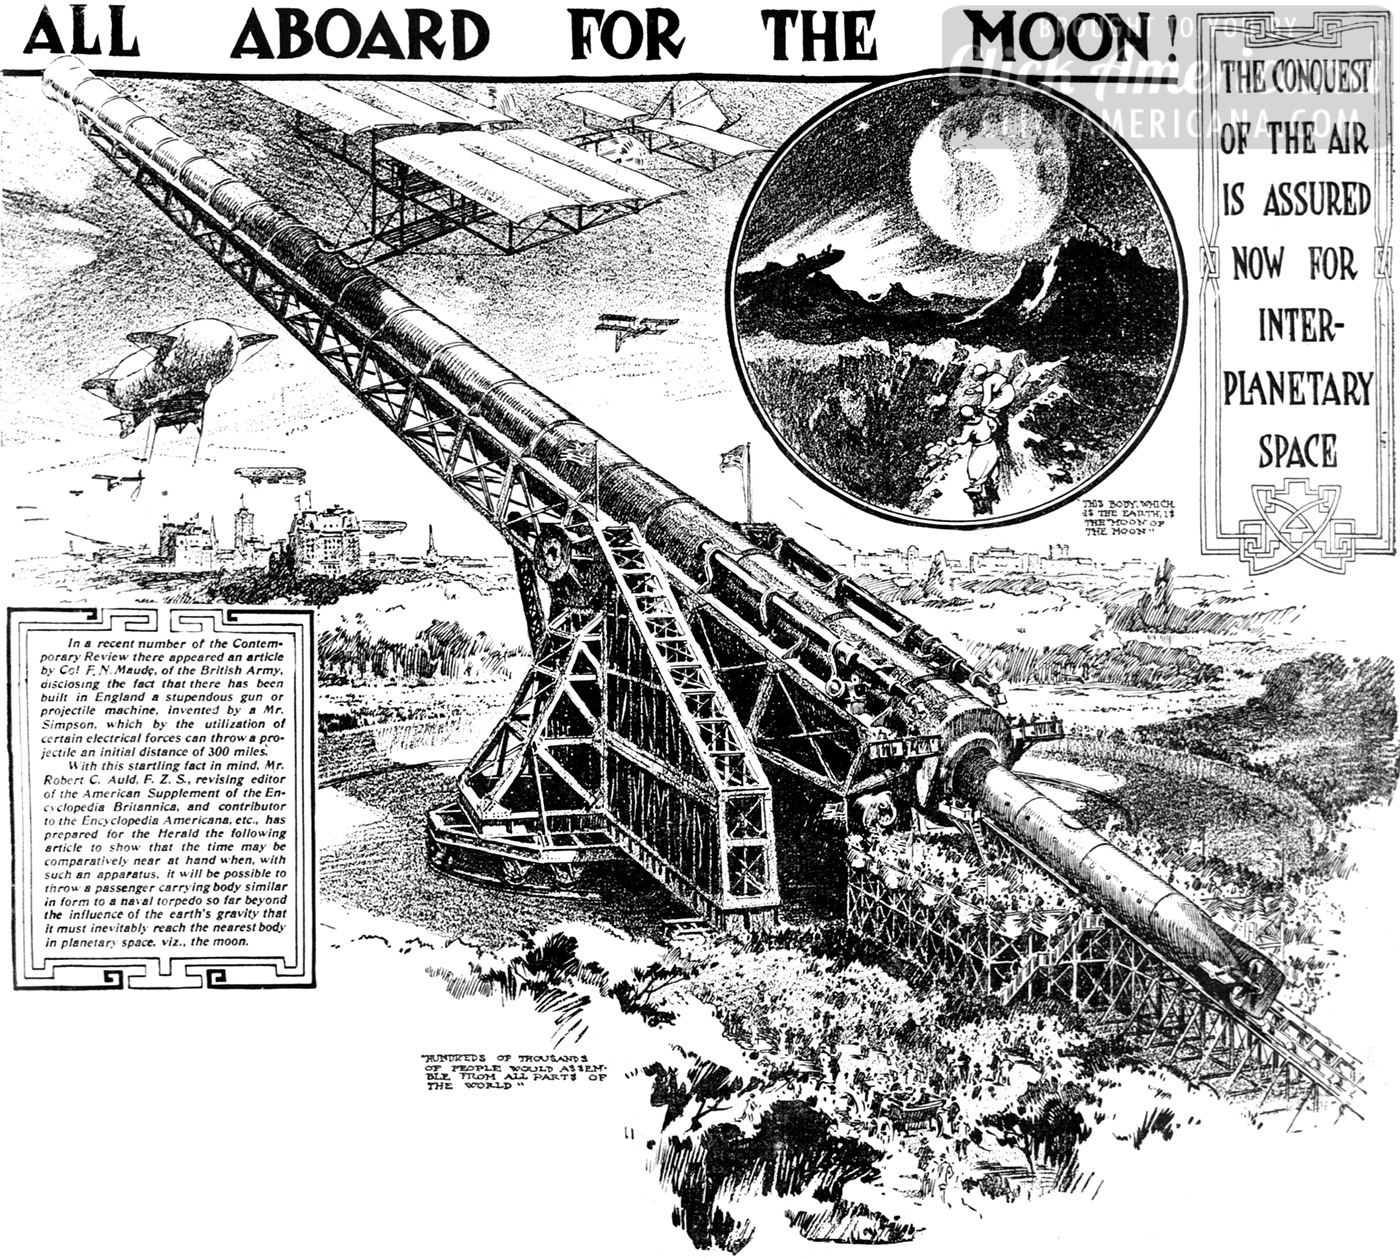 All aboard for the moon! (1908)